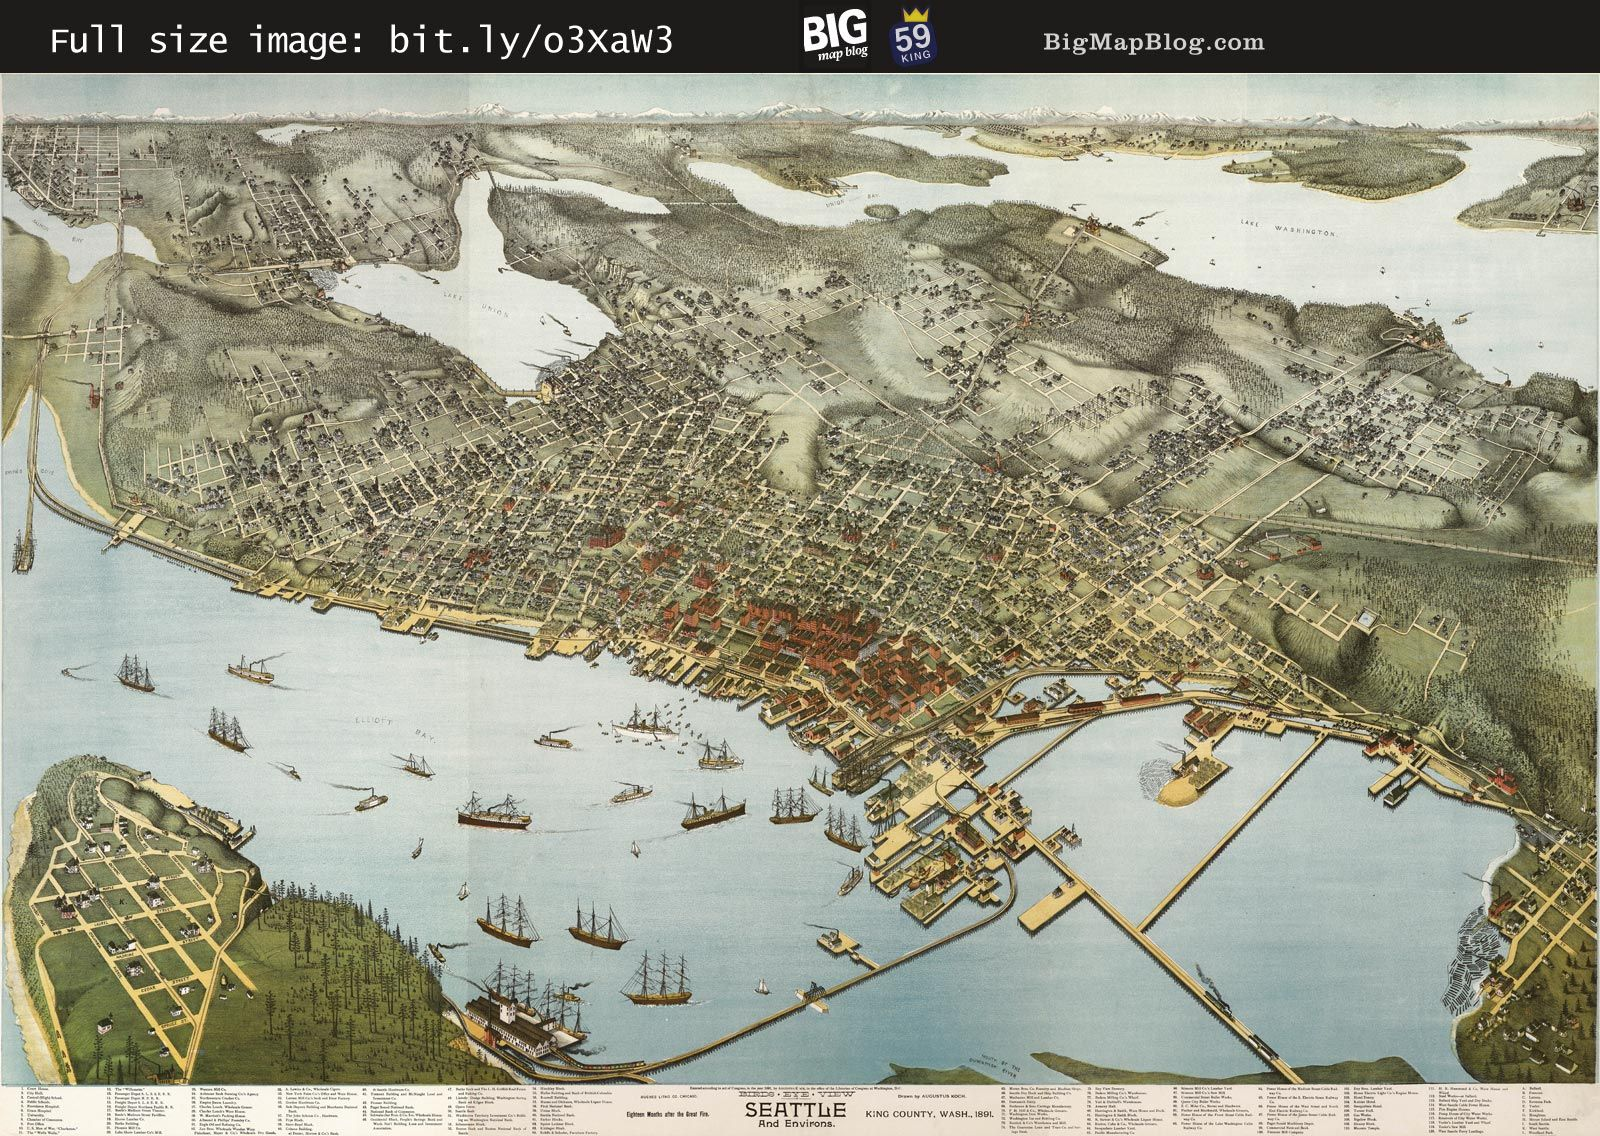 1891 Seattle WA Birds Eye View Panoramic